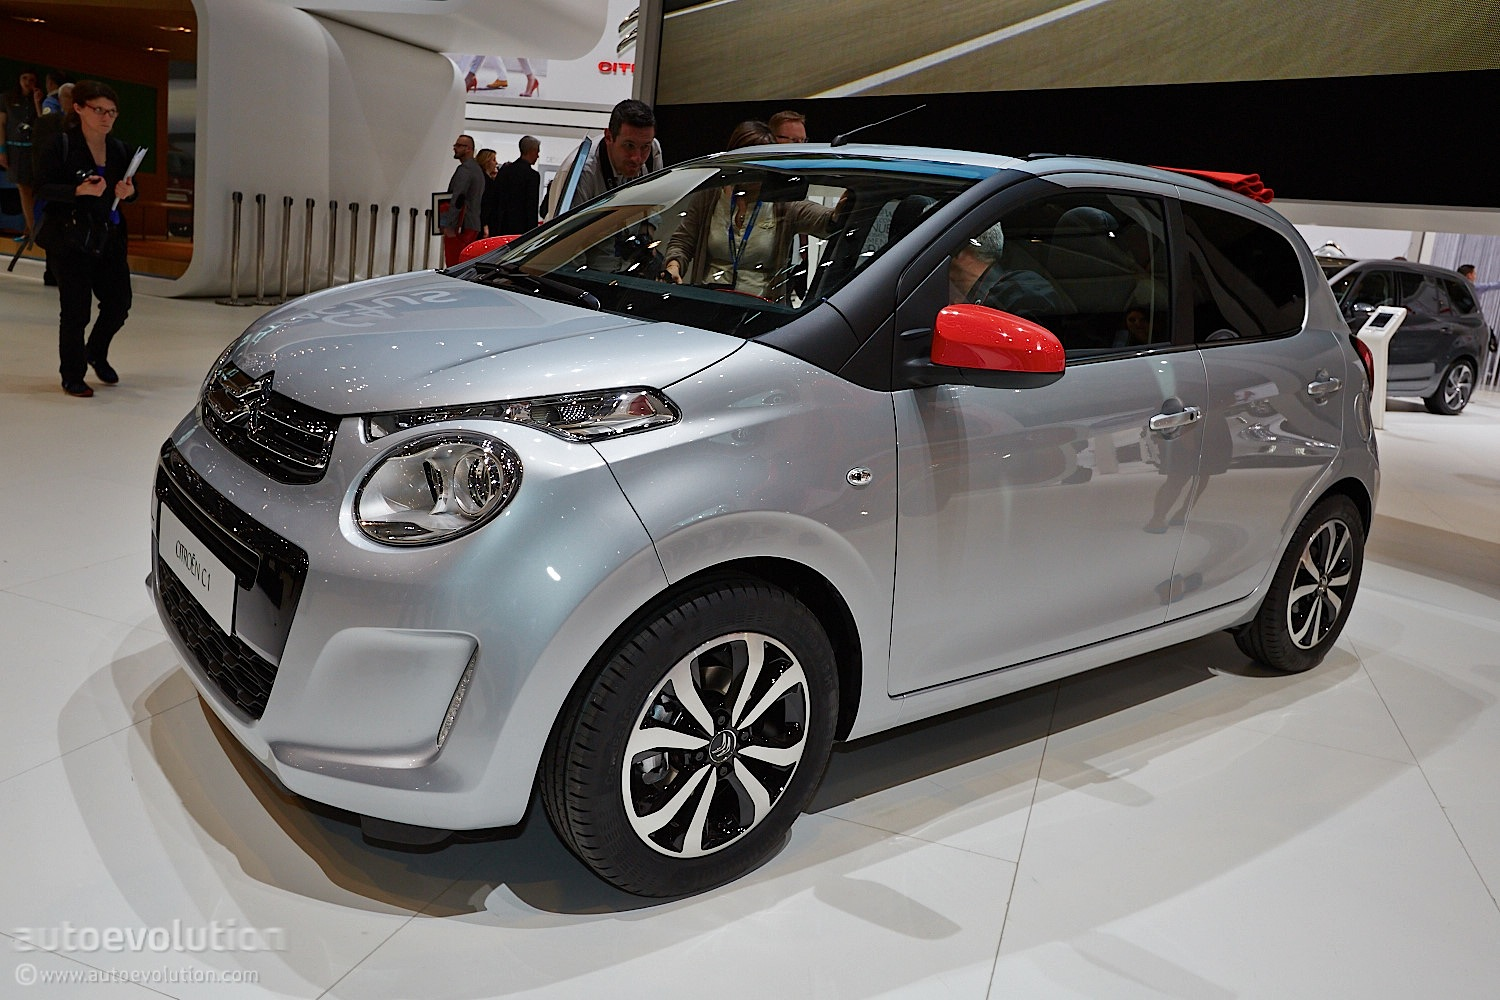 citroen c1 marks return to form for small french cars. Black Bedroom Furniture Sets. Home Design Ideas